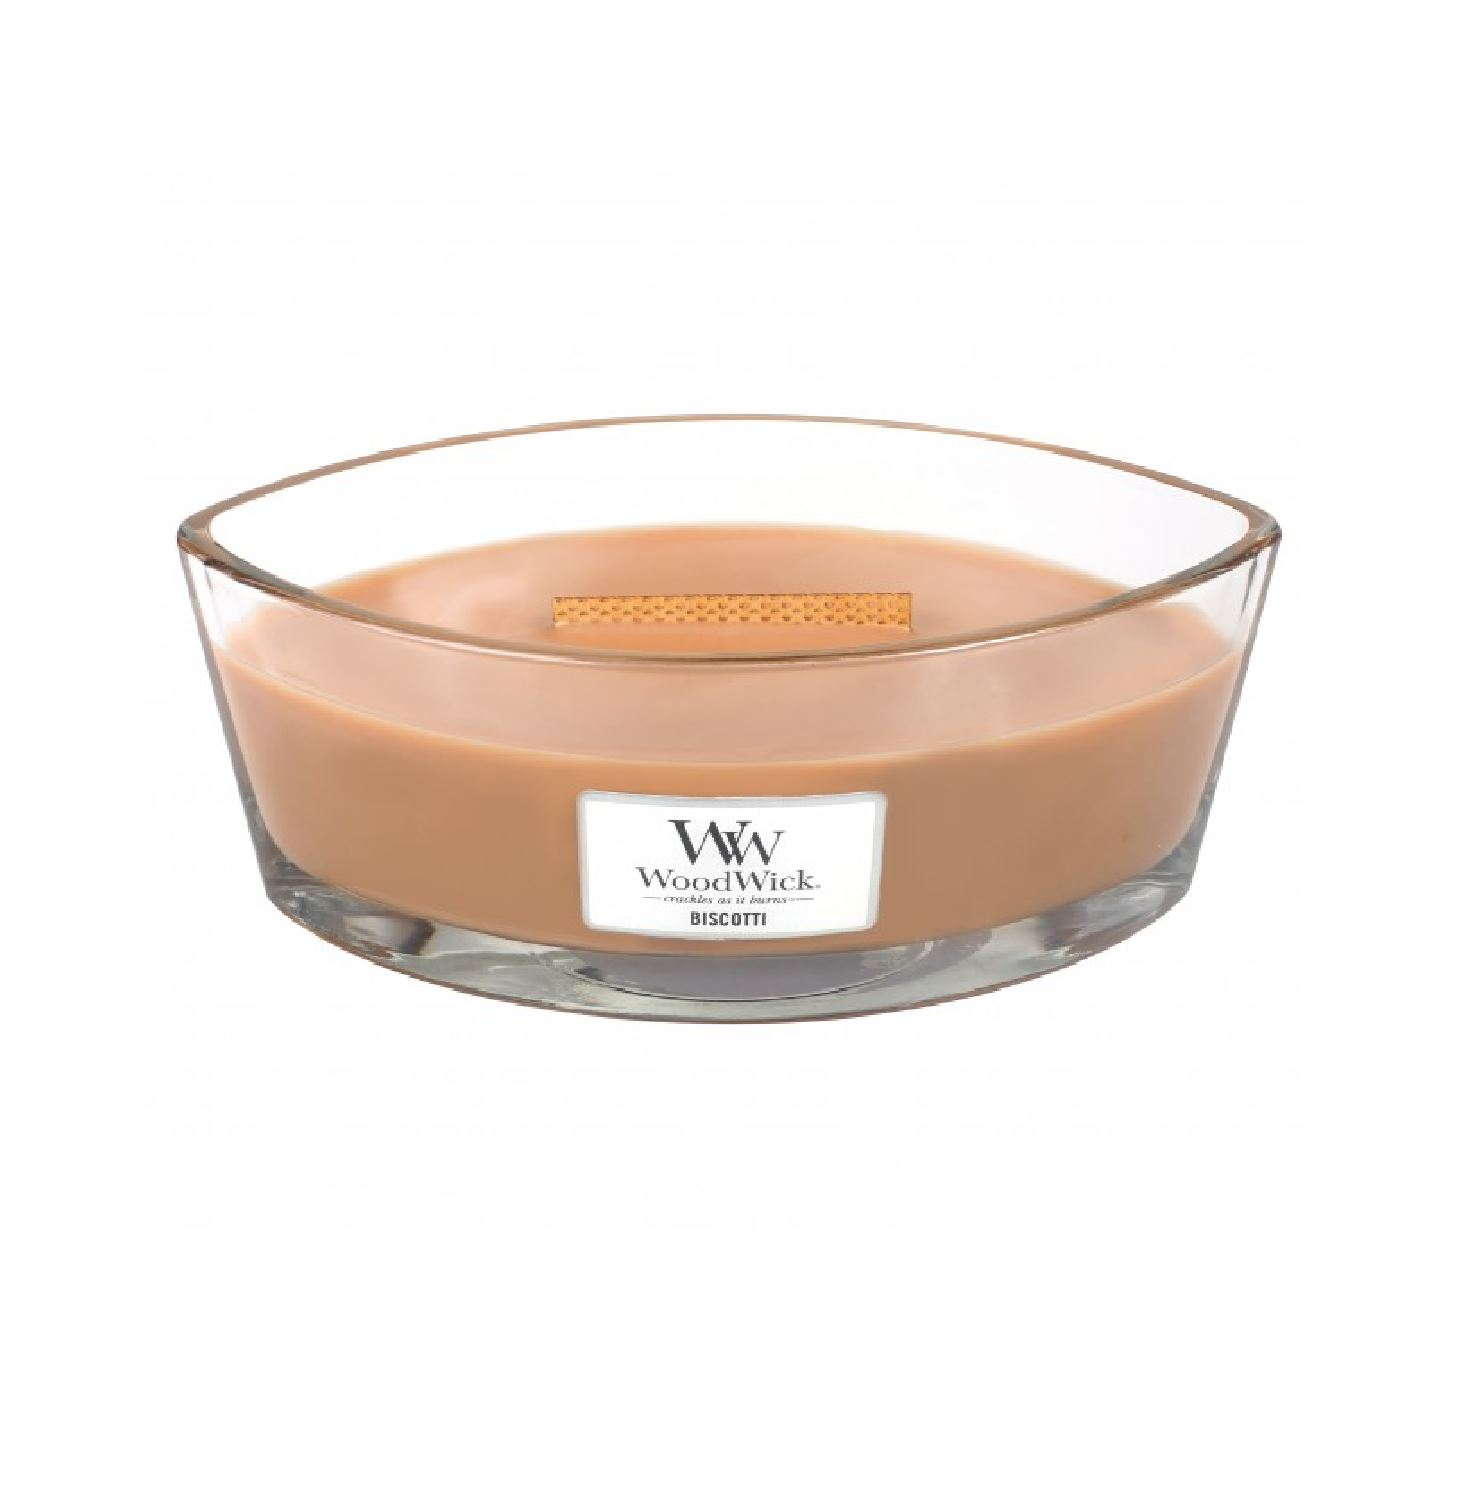 Woodwick-Hearthwick-HW-Large-Candle-Jar-Elipse-16oz-Scented-Fragrance-Home-Gift